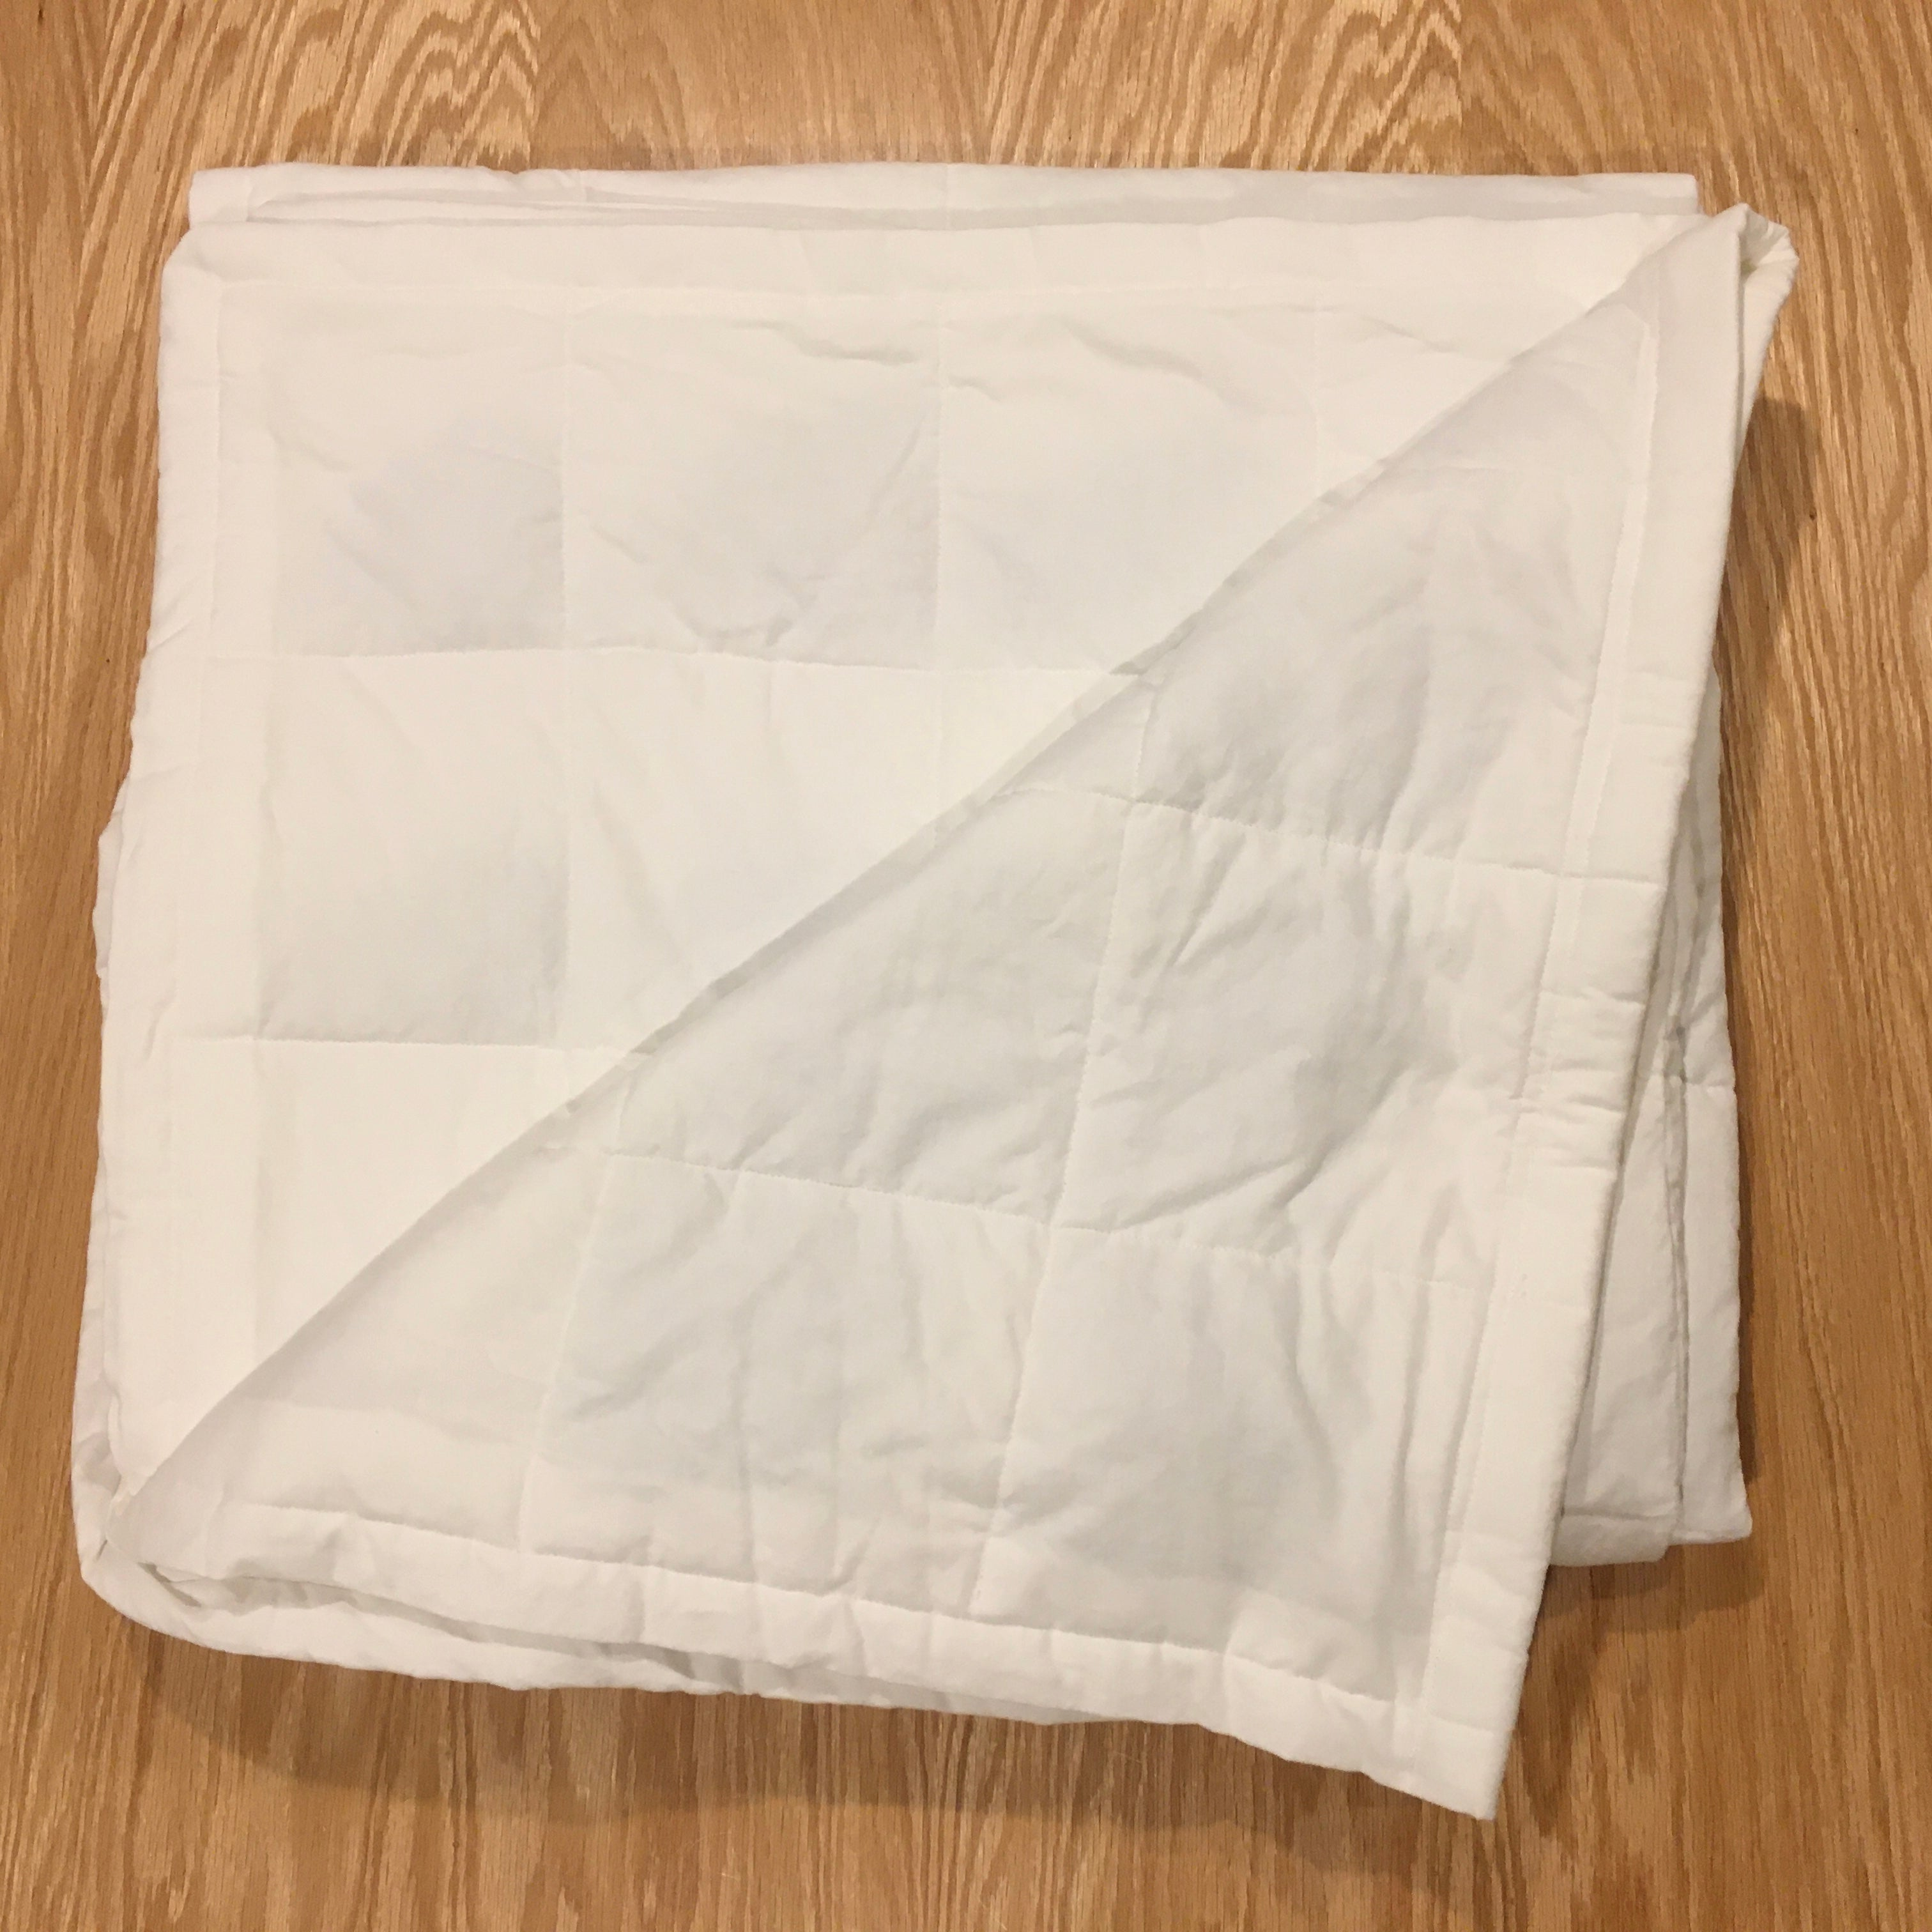 "New Twin Size (40x72"") White Cotton 15lbs Weighted Blanket - FINAL CLEARANCE"